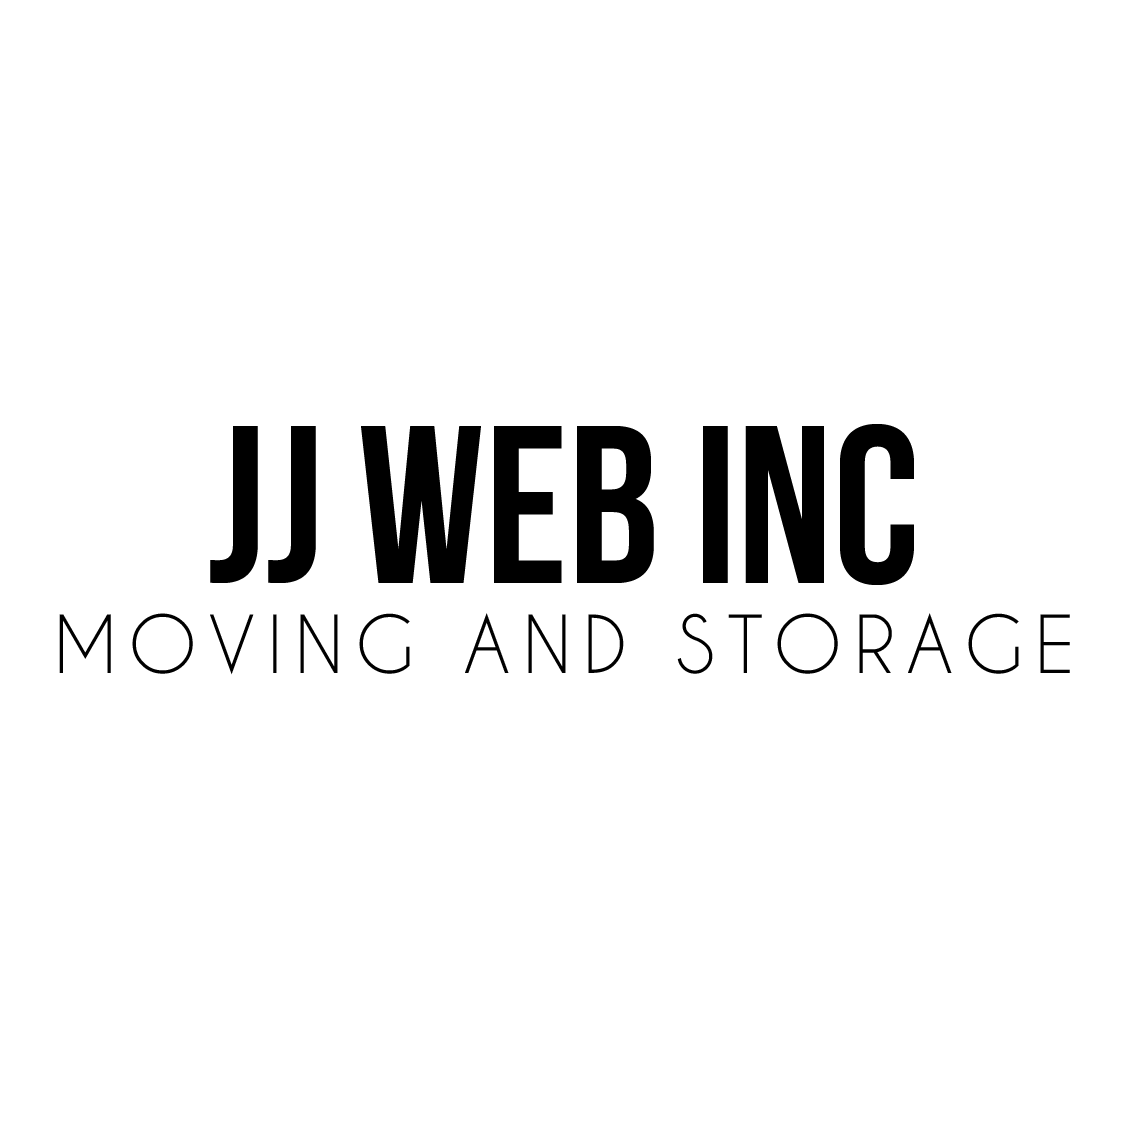 JJ Web Inc Moving and Storage